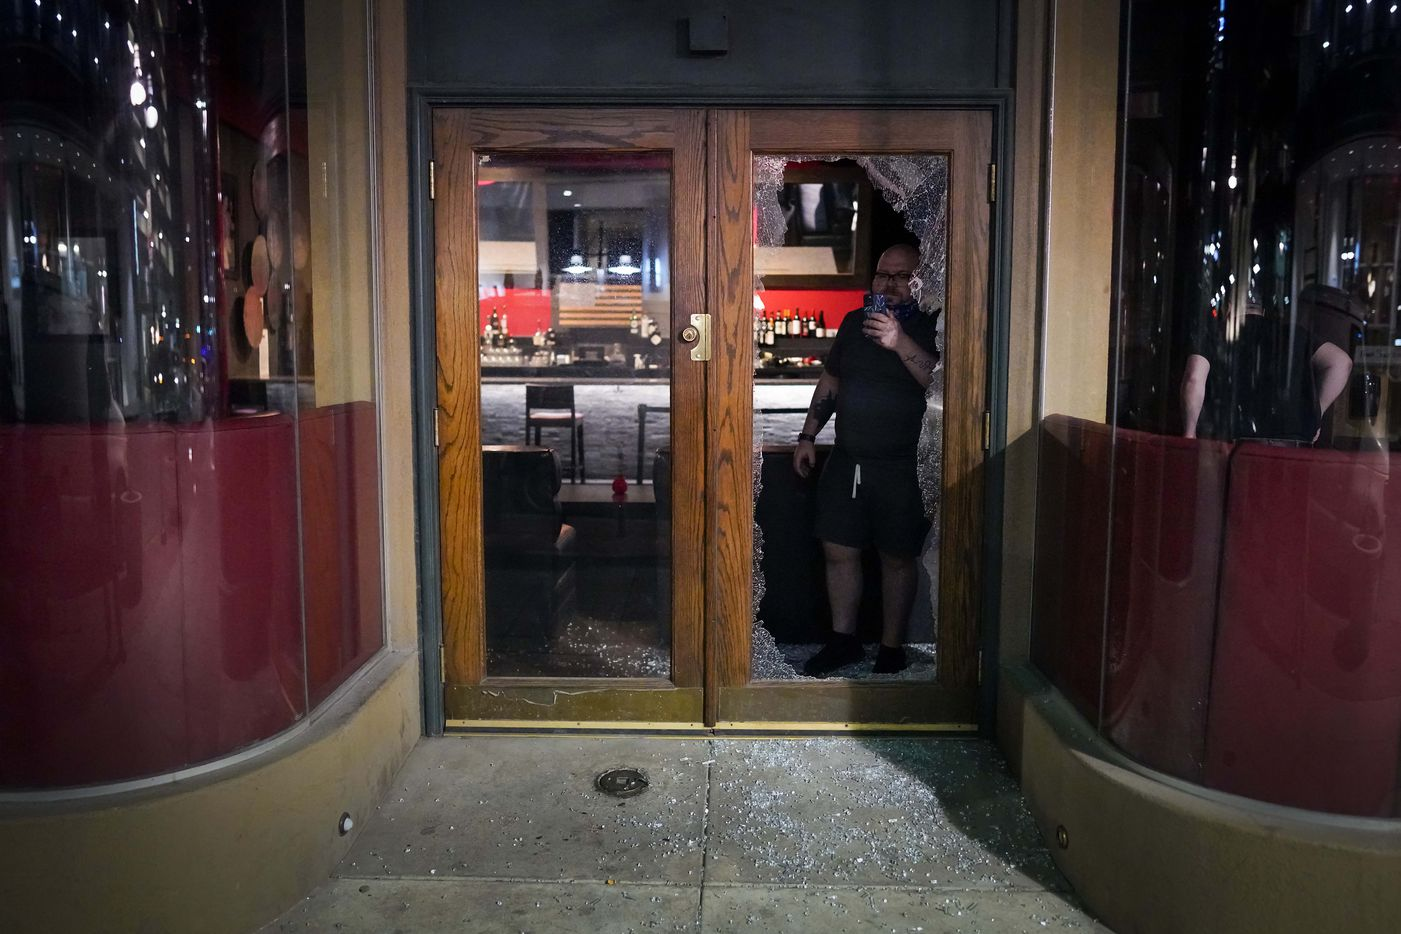 A man takes a photo through the broken glass doorway of Campisi's Restaurant downtown following a protest against police brutality in the early morning hours of Saturday, May 30, 2020, in Dallas.